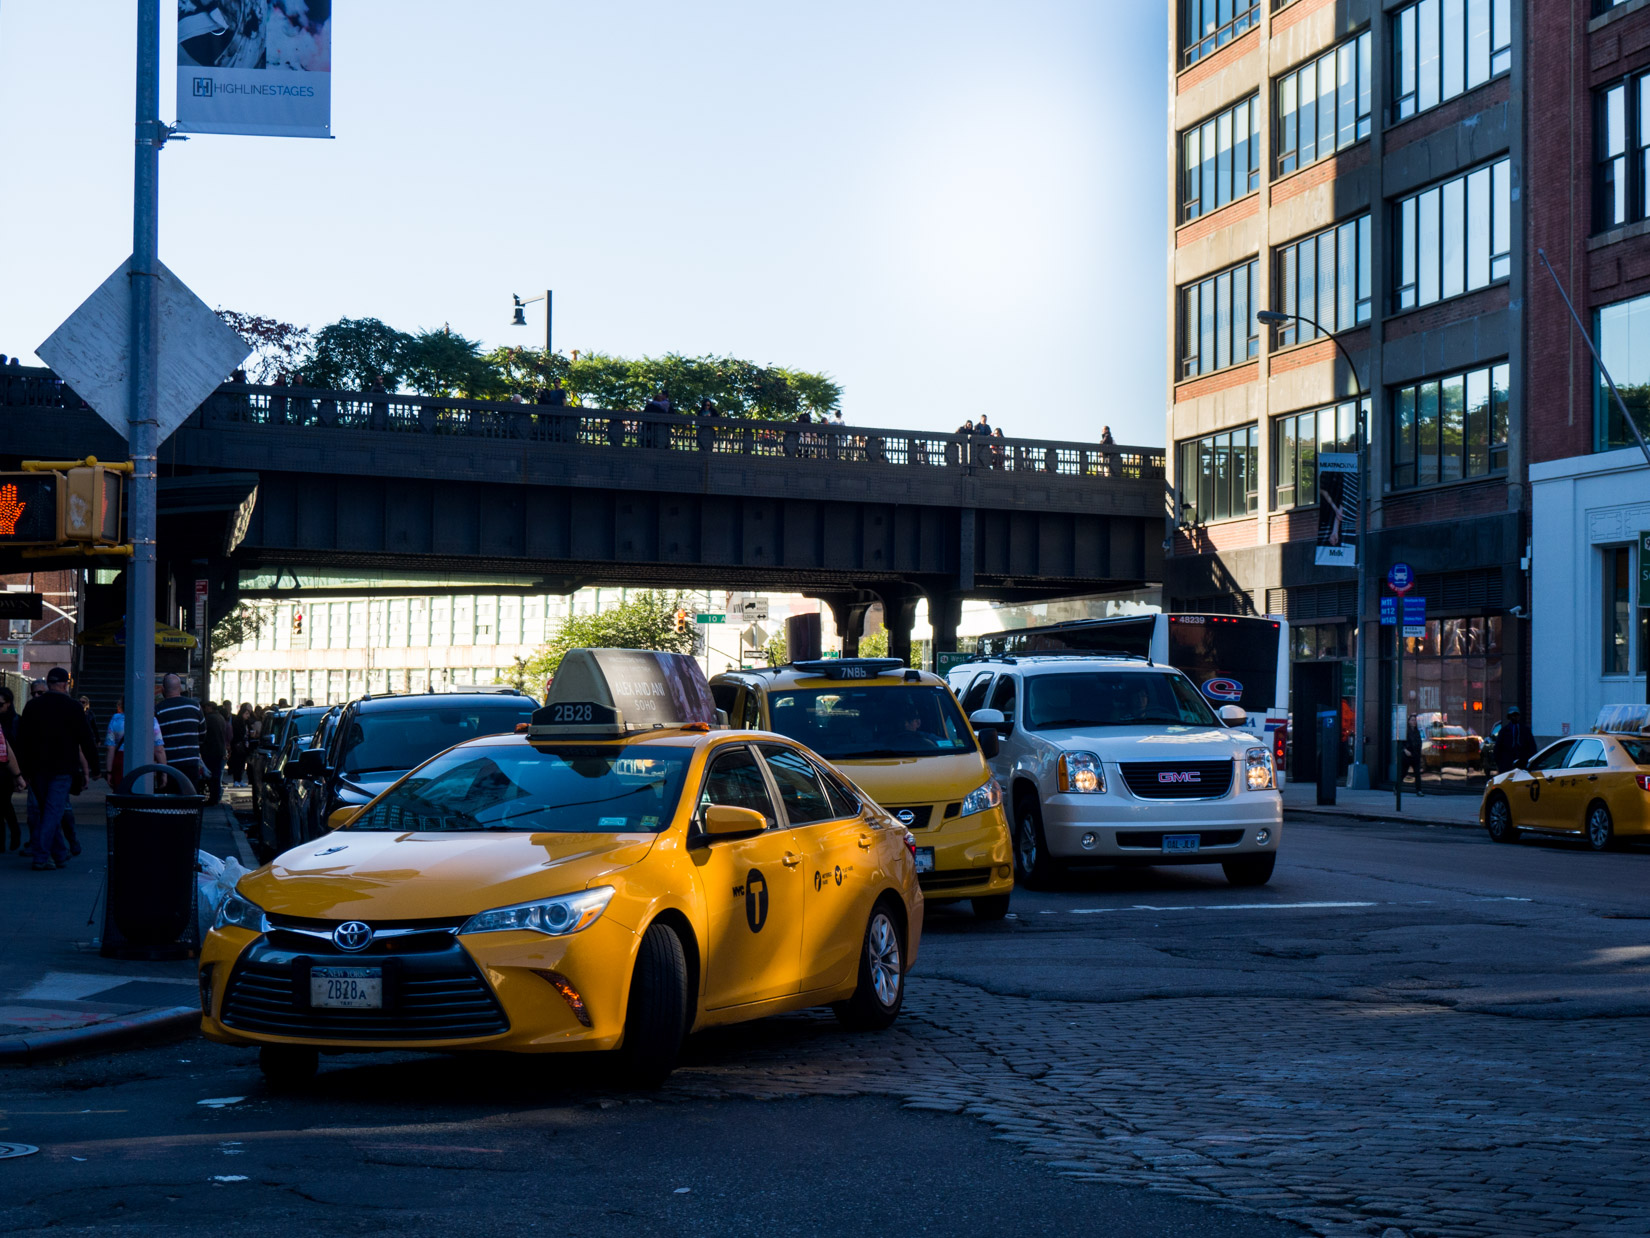 City Buildings and Street with Taxi